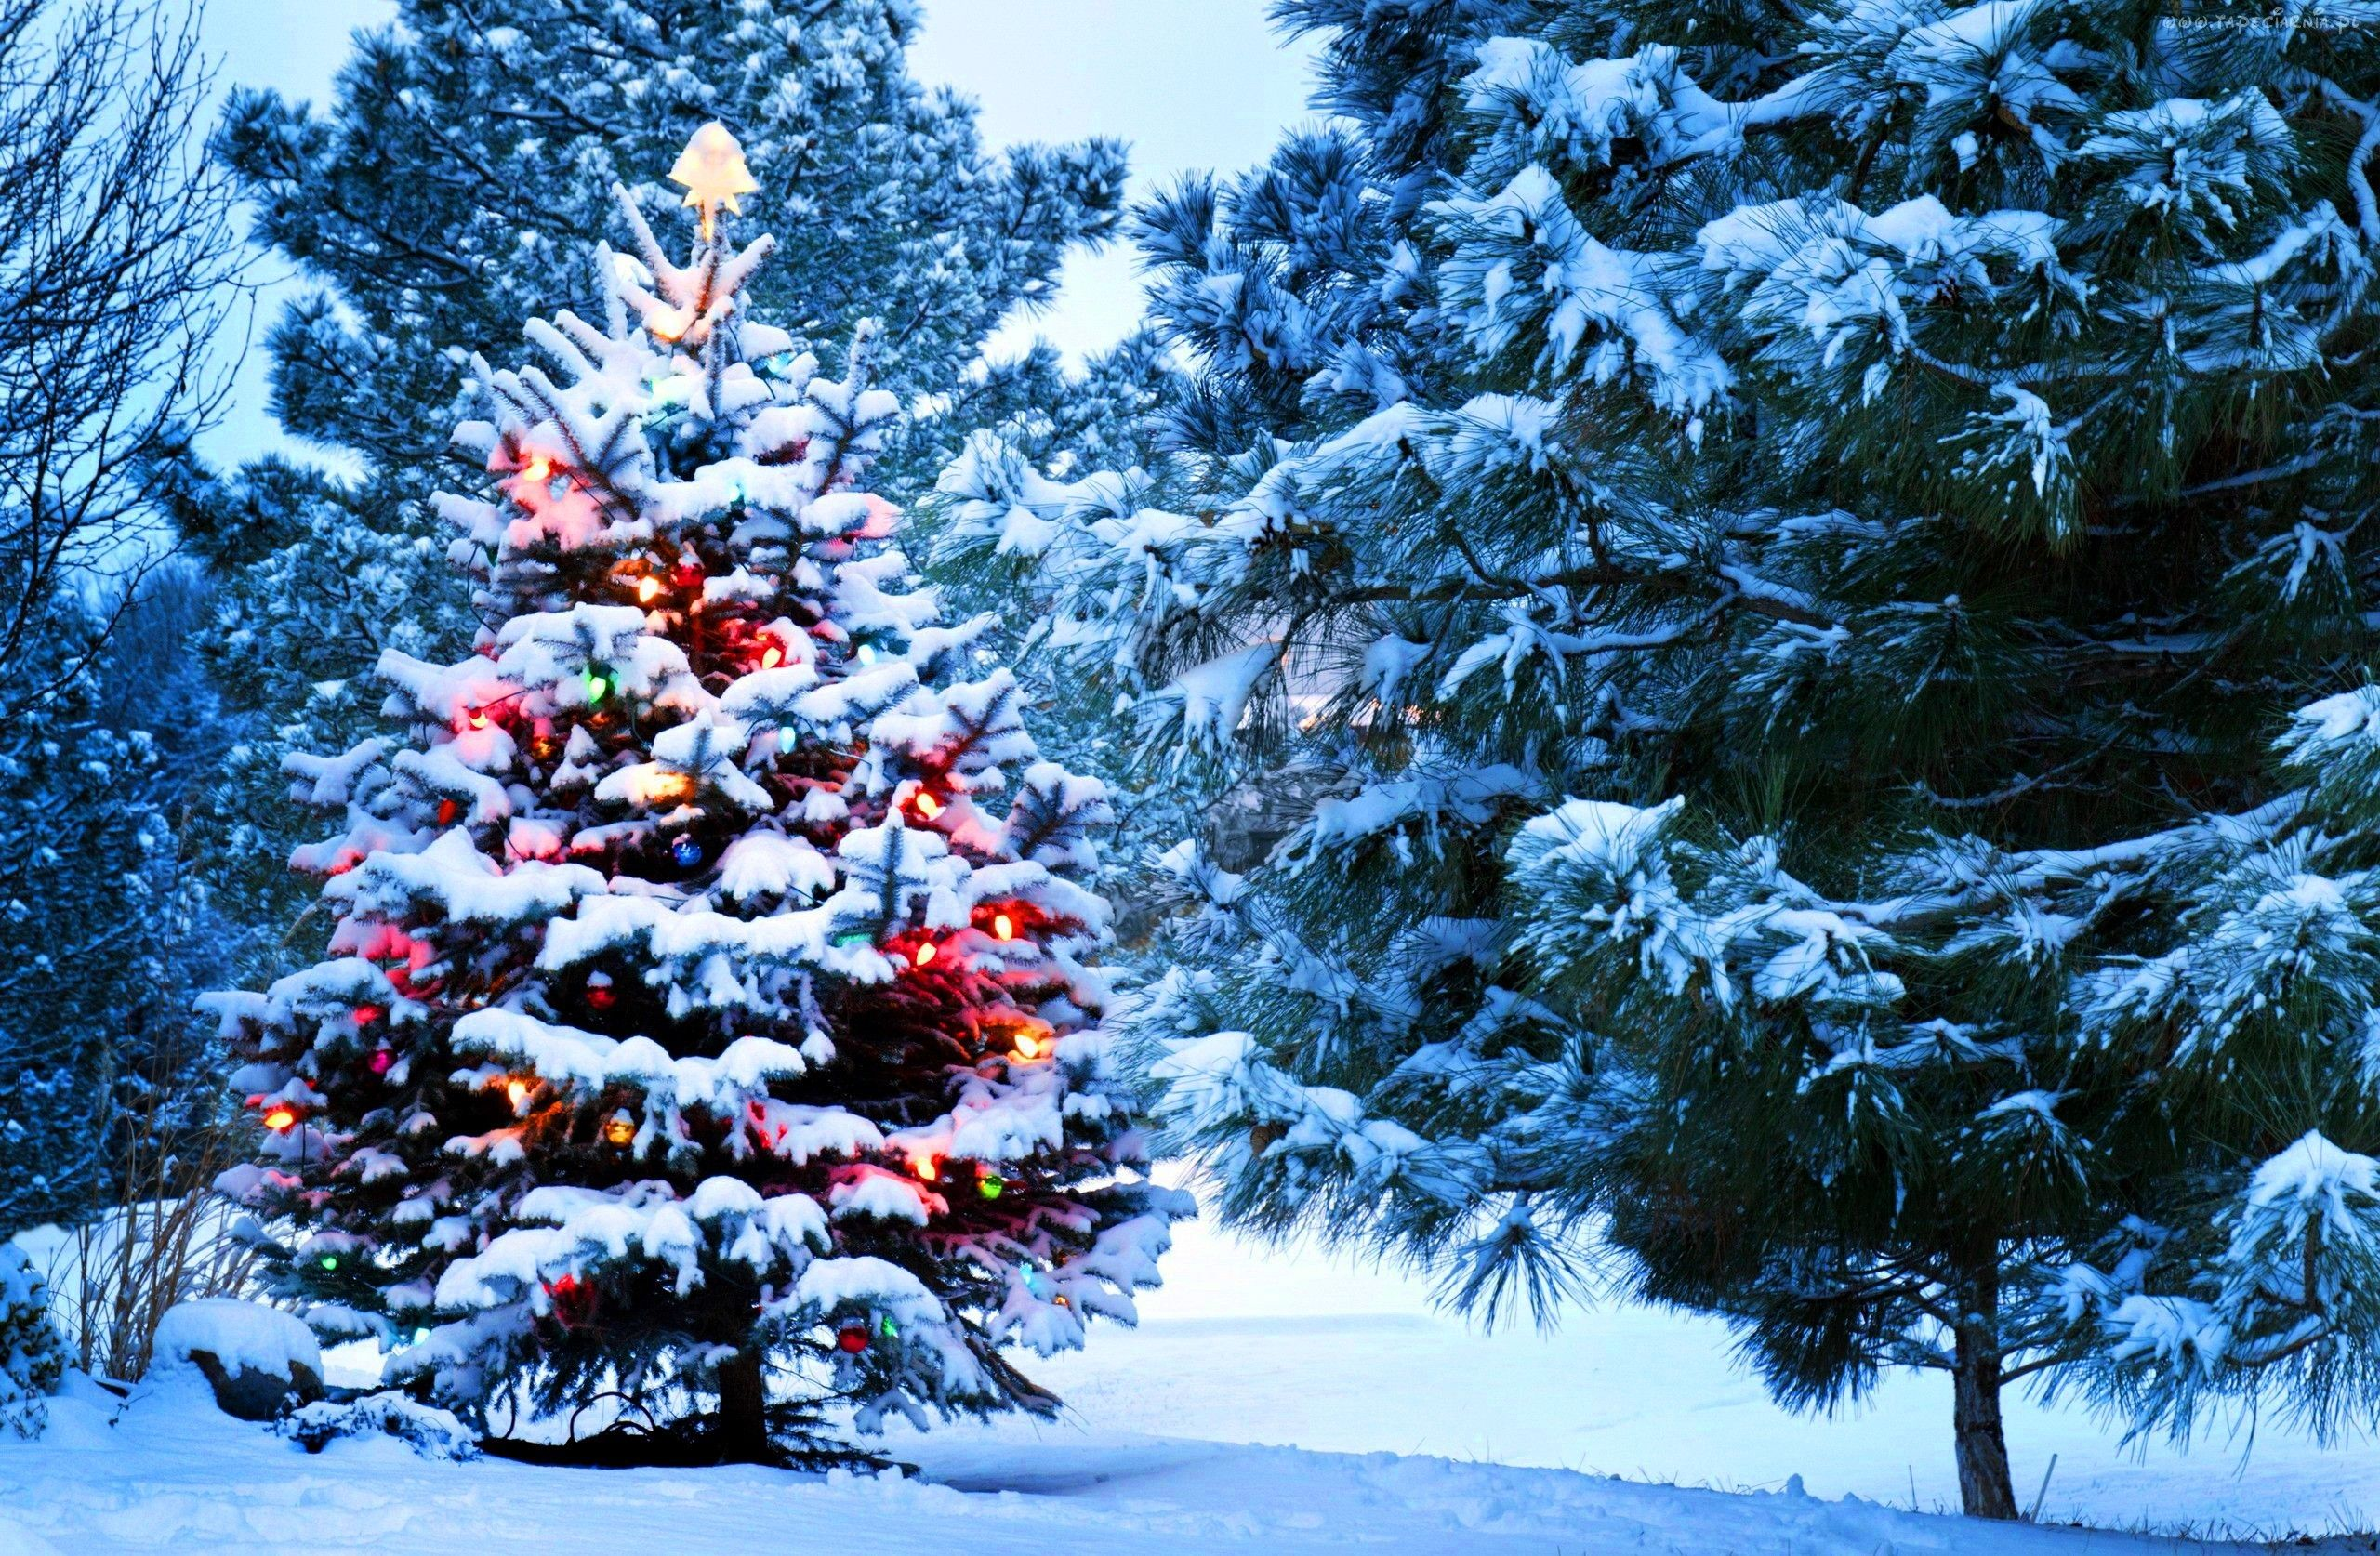 Top Christmas Tree Hd Wallpapers #Followme #Cooliphone6Case On #Twitter #Facebook